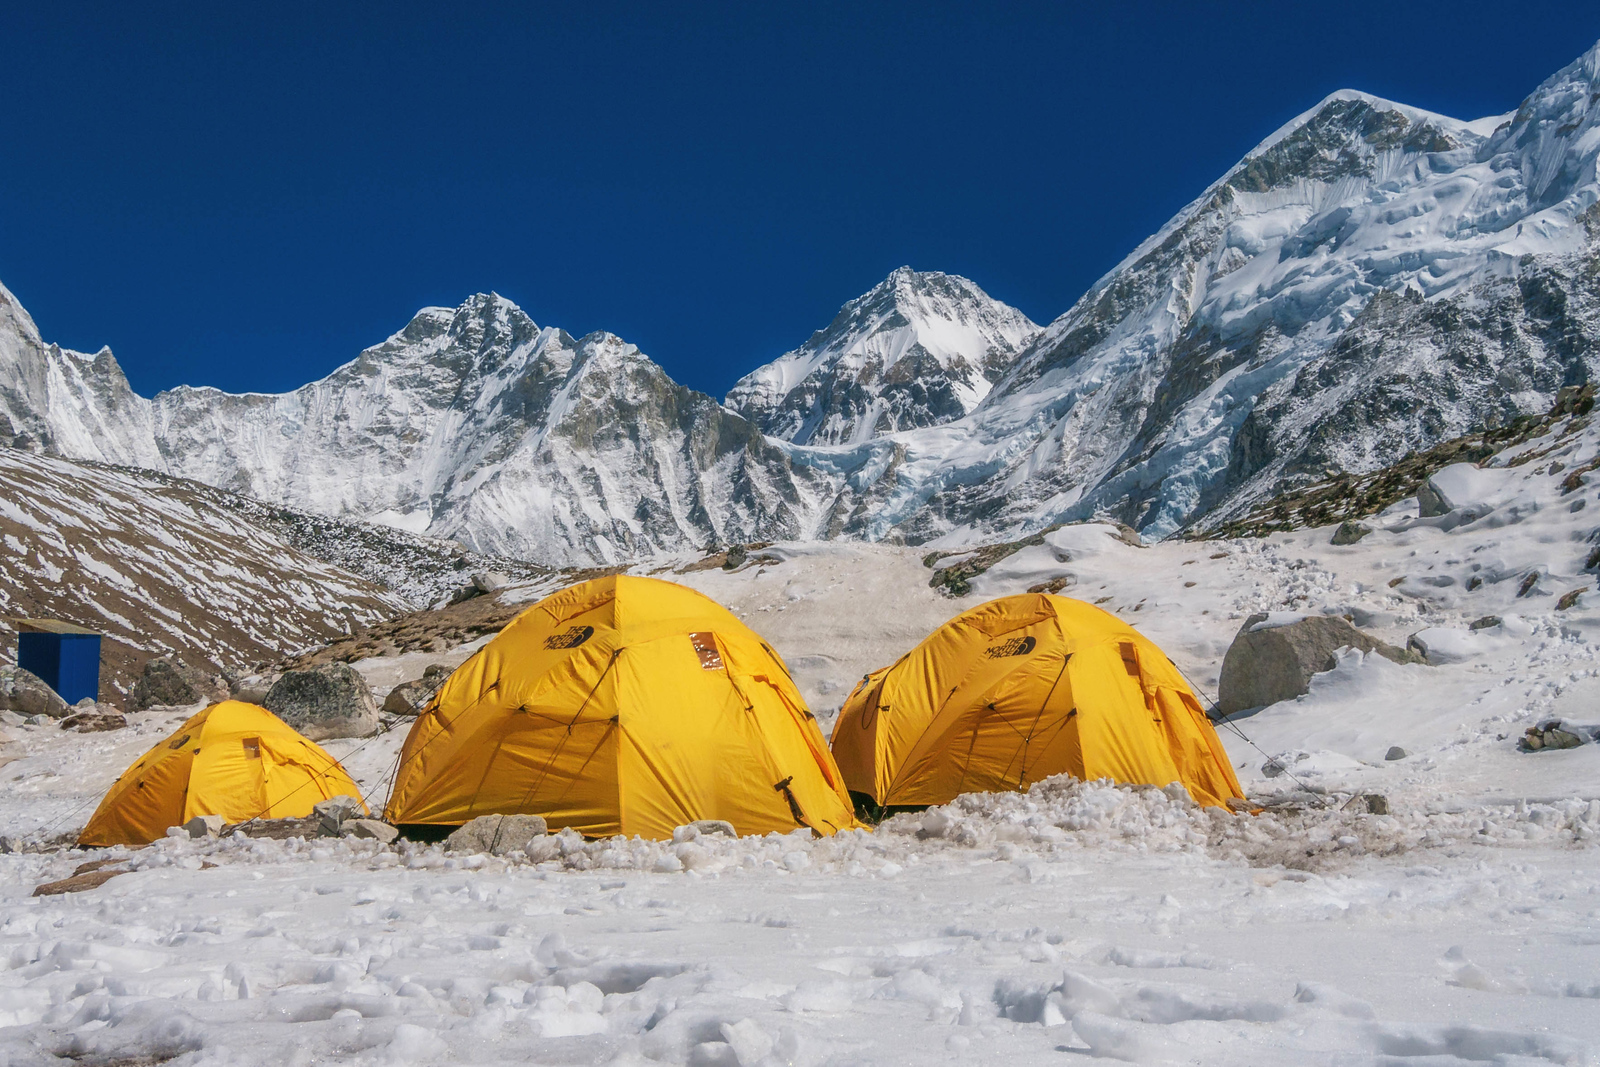 Expedition tents start to arrive at Gorak Shep near Mount Everest Base Camp